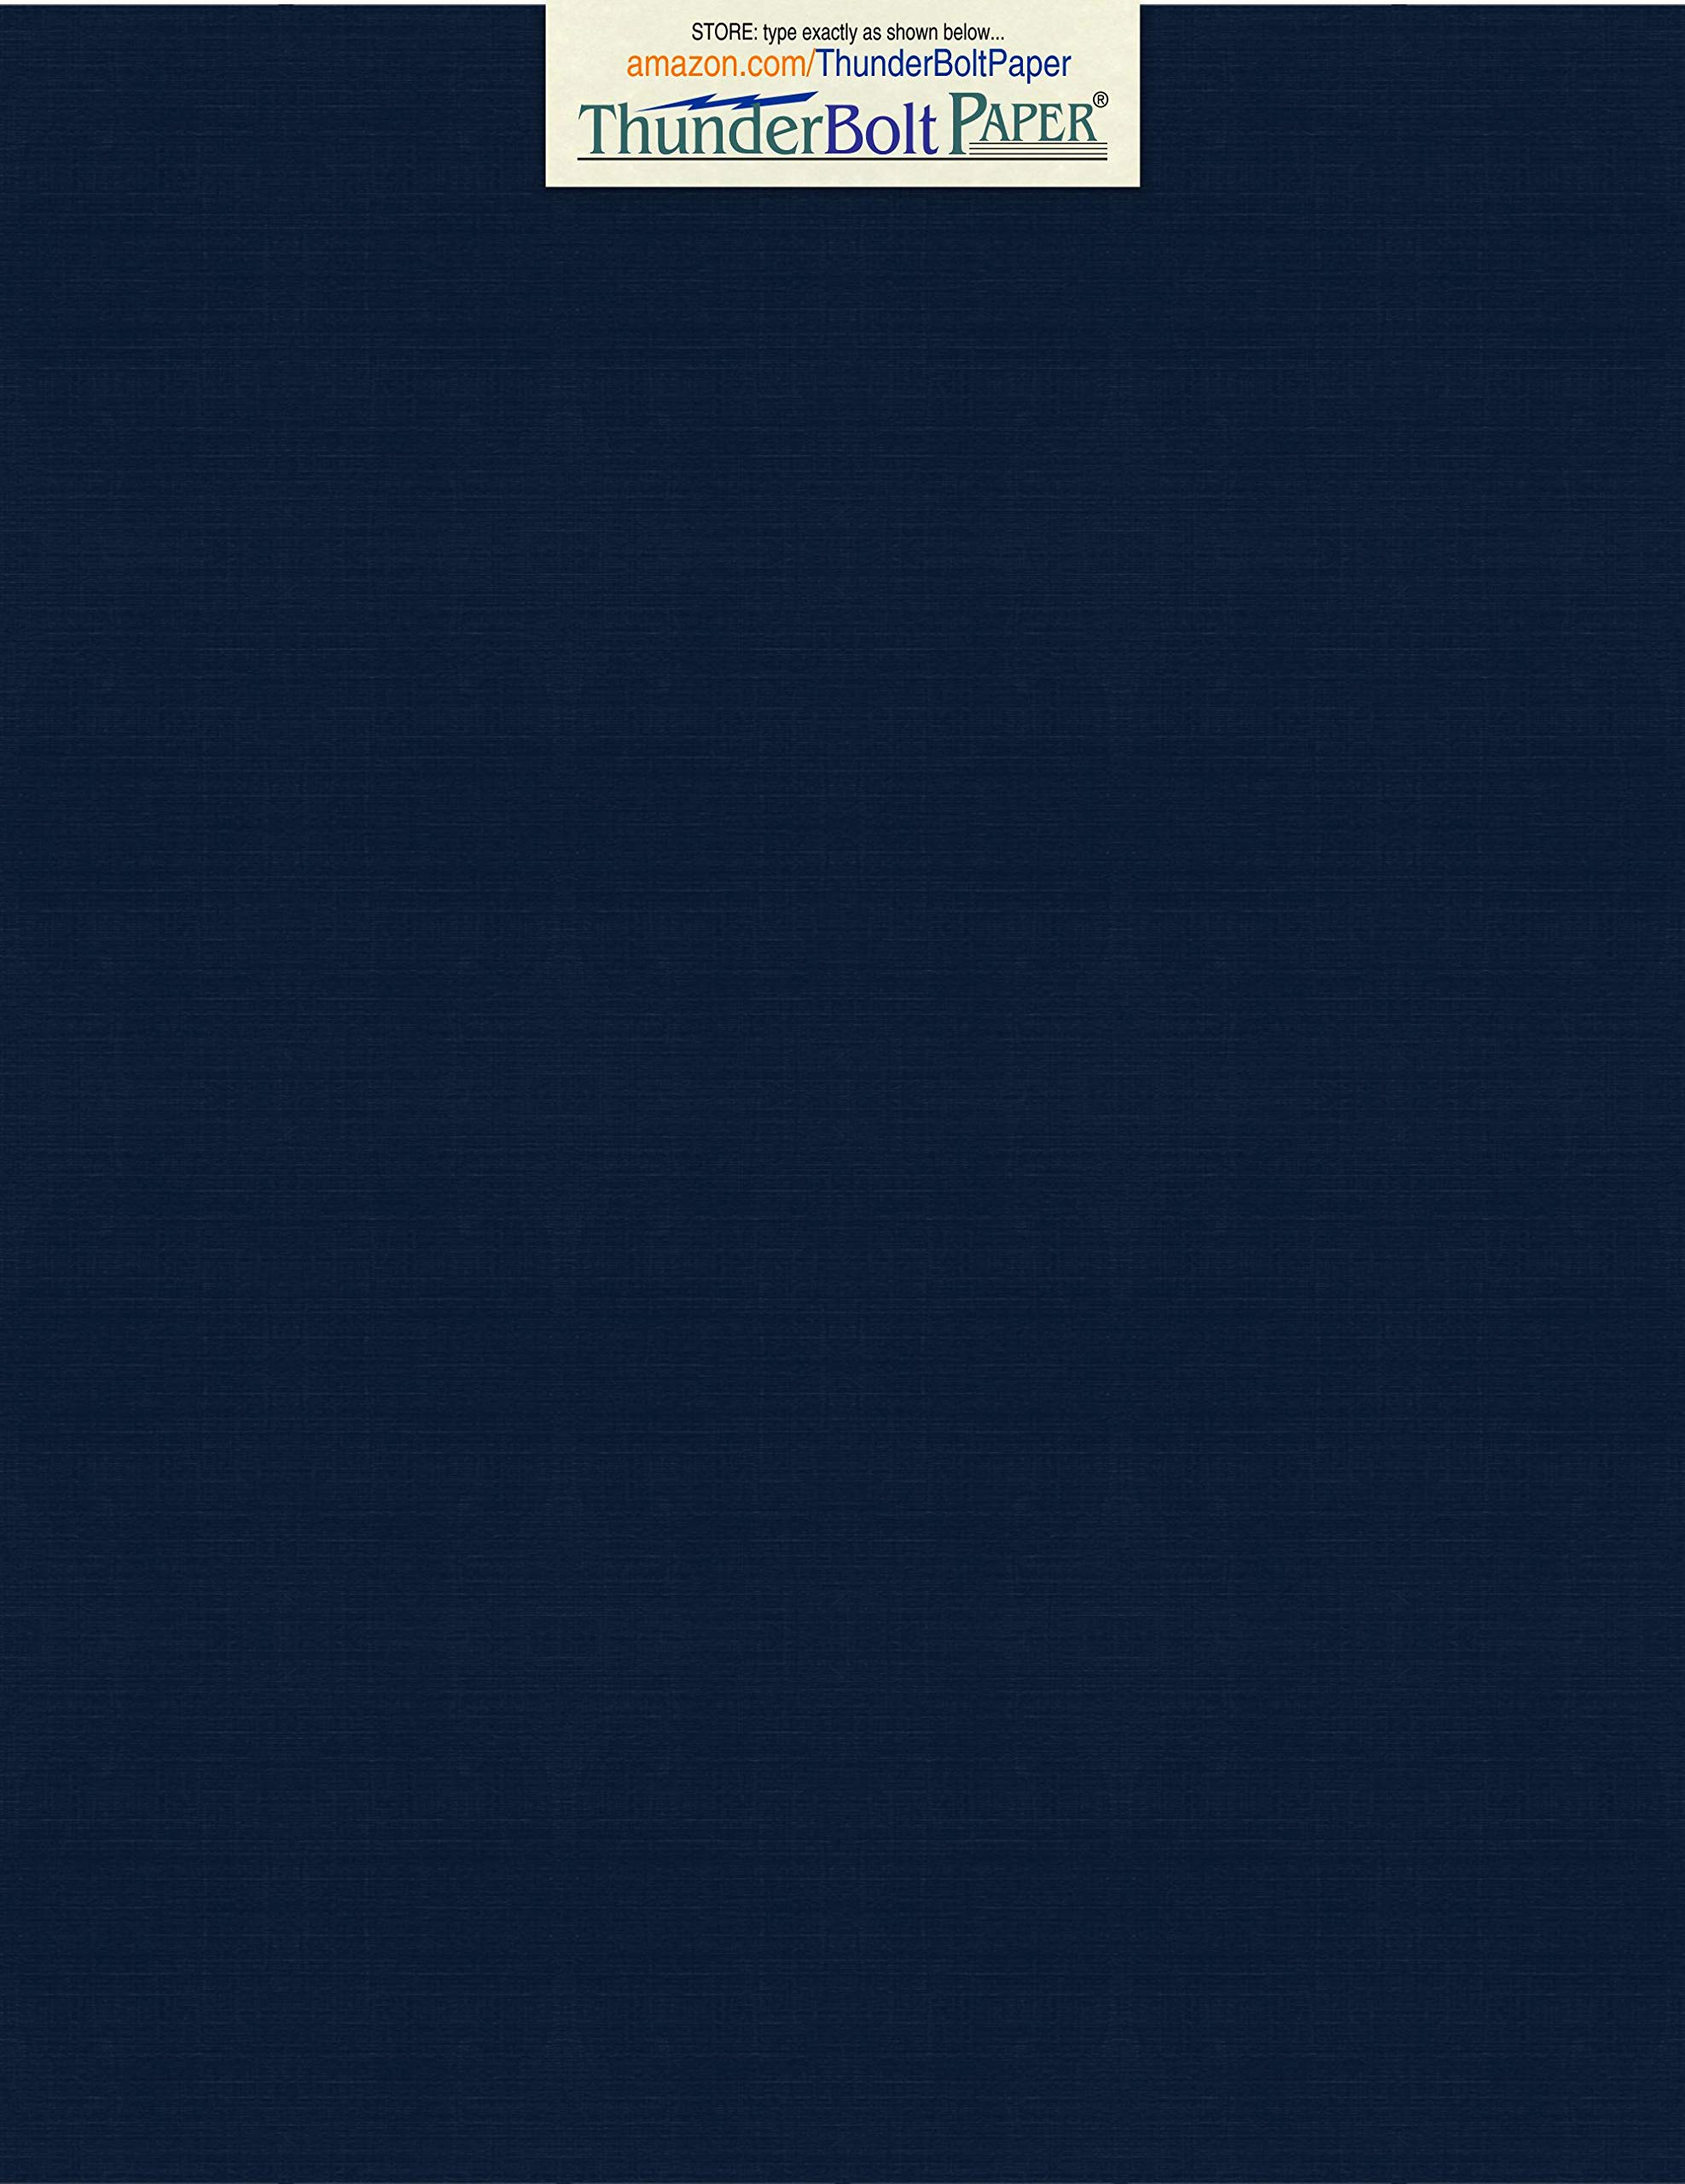 150 Dark Navy Blue Linen 80# Cover Paper Sheets - 8.5'' X 11'' (8.5X11 Inches) Standard Letter|Flyer Size - 80 lb/Pound Card Weight - Fine Linen Textured Finish - Deep Dye Quality Cardstock by ThunderBolt Paper